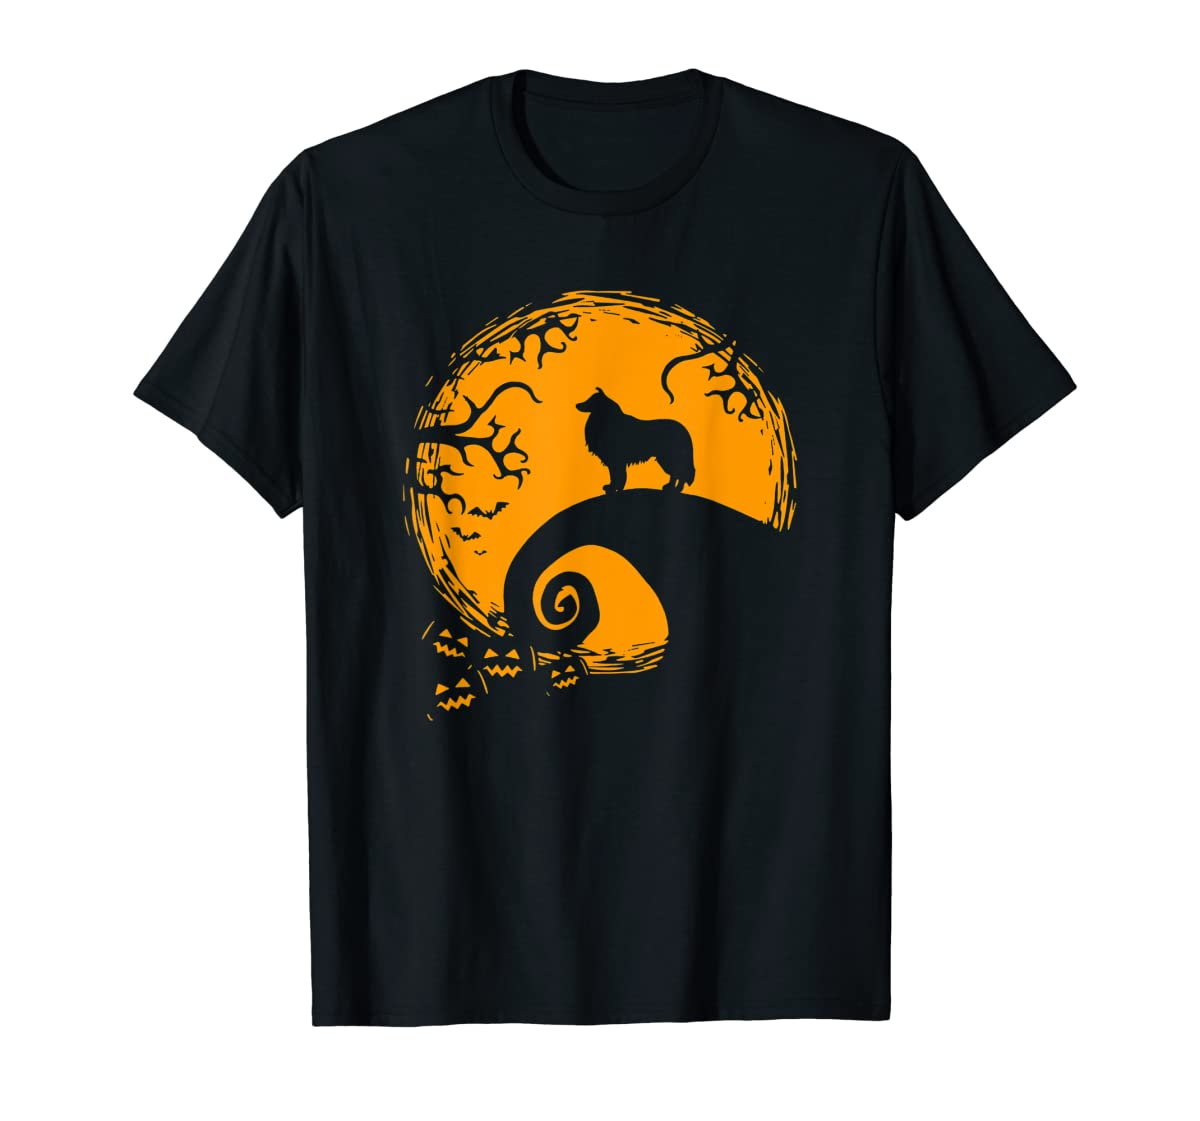 Funny Border Collie And Moon Halloween Costume Shirt-Men's T-Shirt-Black